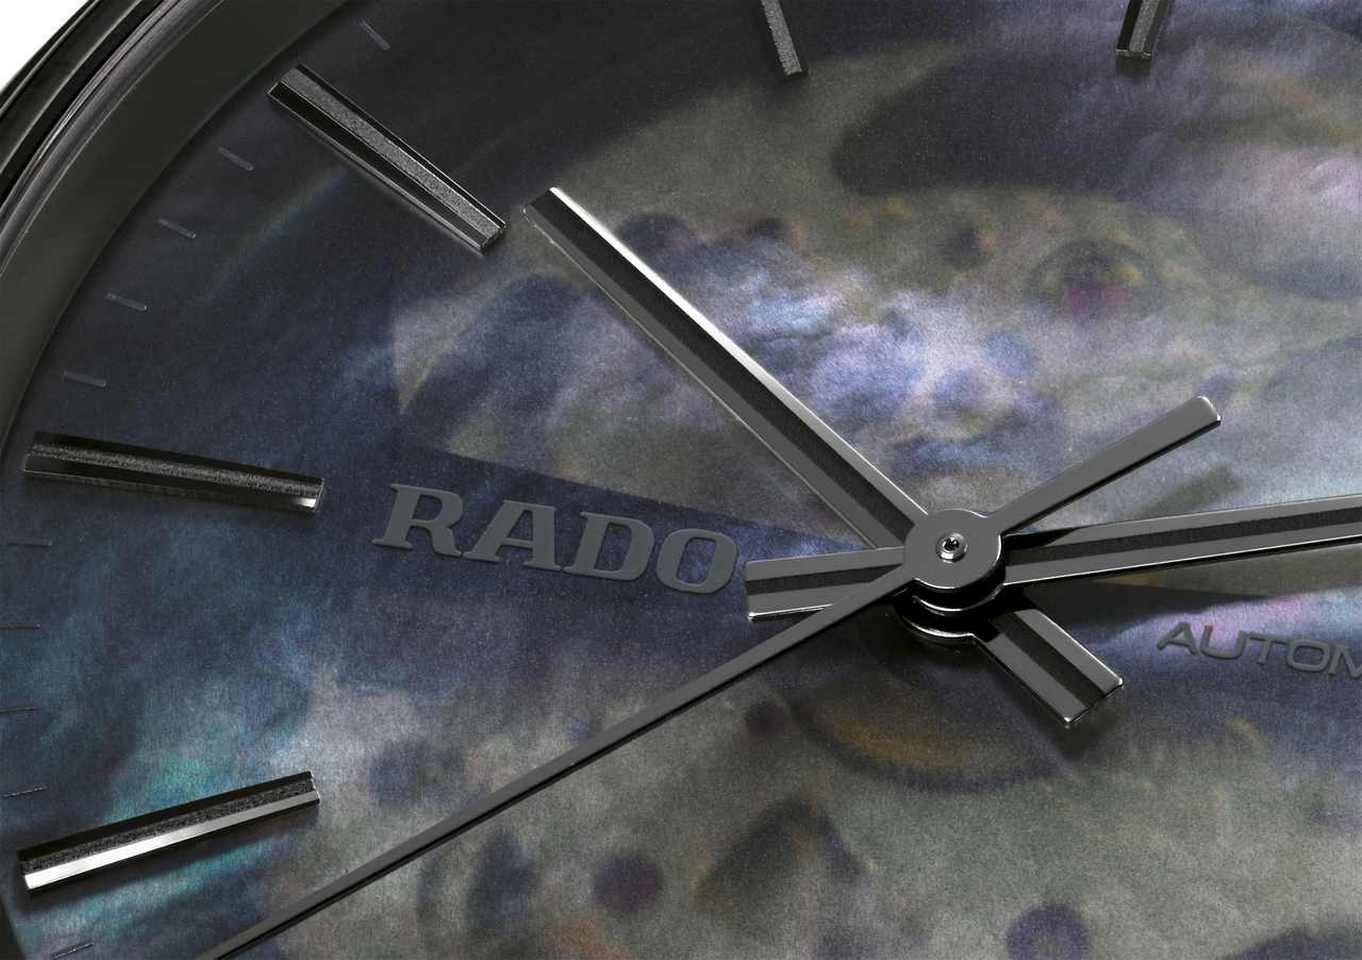 anteprima-baselworld-2016-rado-true-light-ref-734-0106-3-090-ref-734-0101-3-090-prezzo-price_0-1007